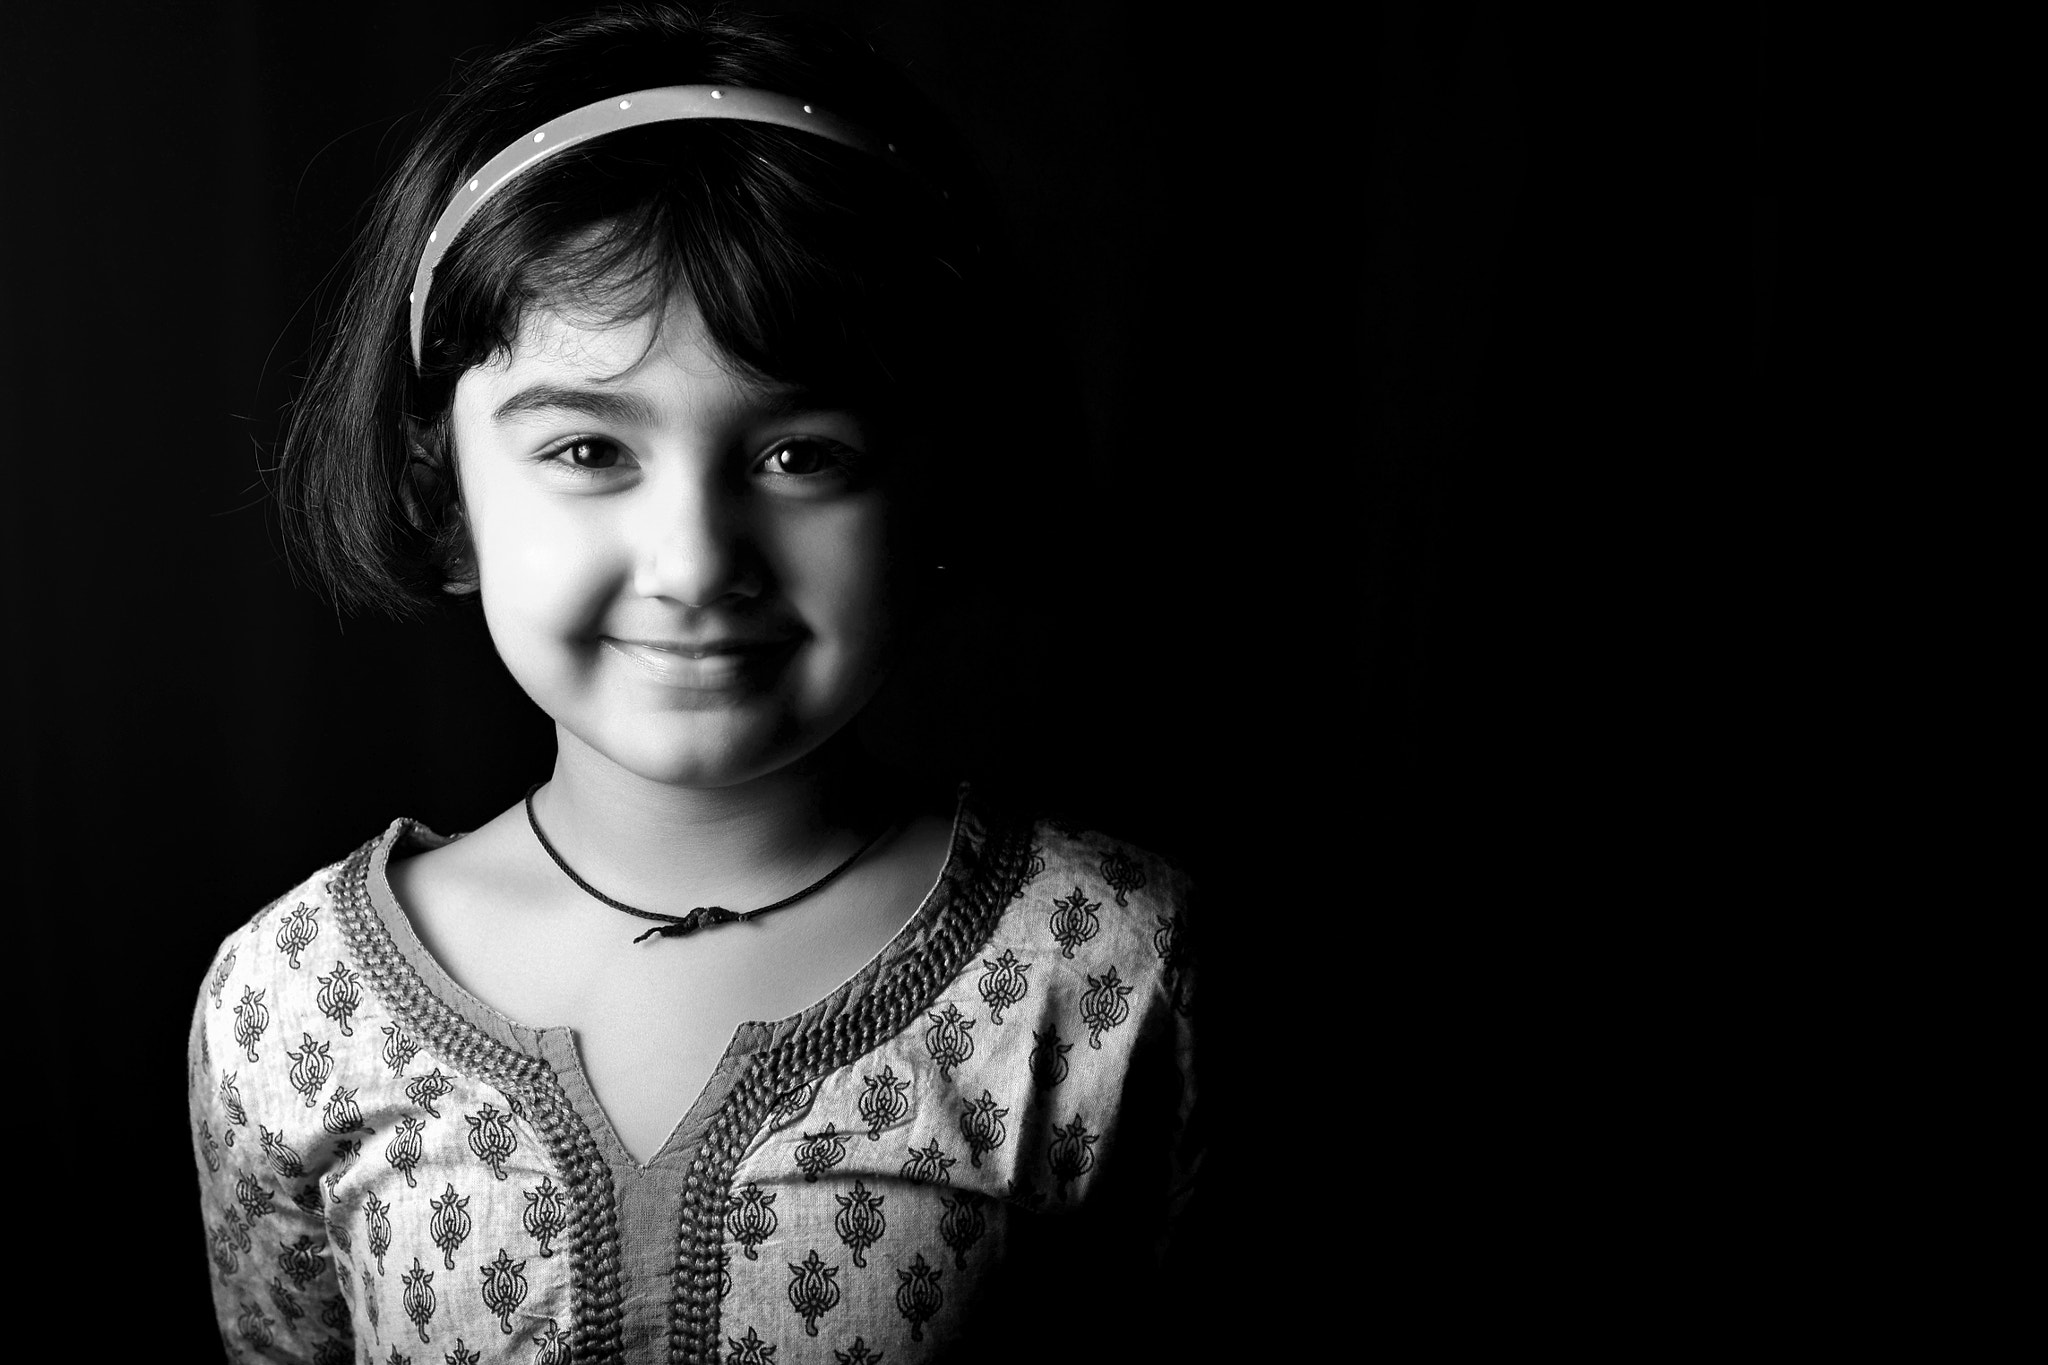 Photograph Innocence  by Avik Chatterjee on 500px